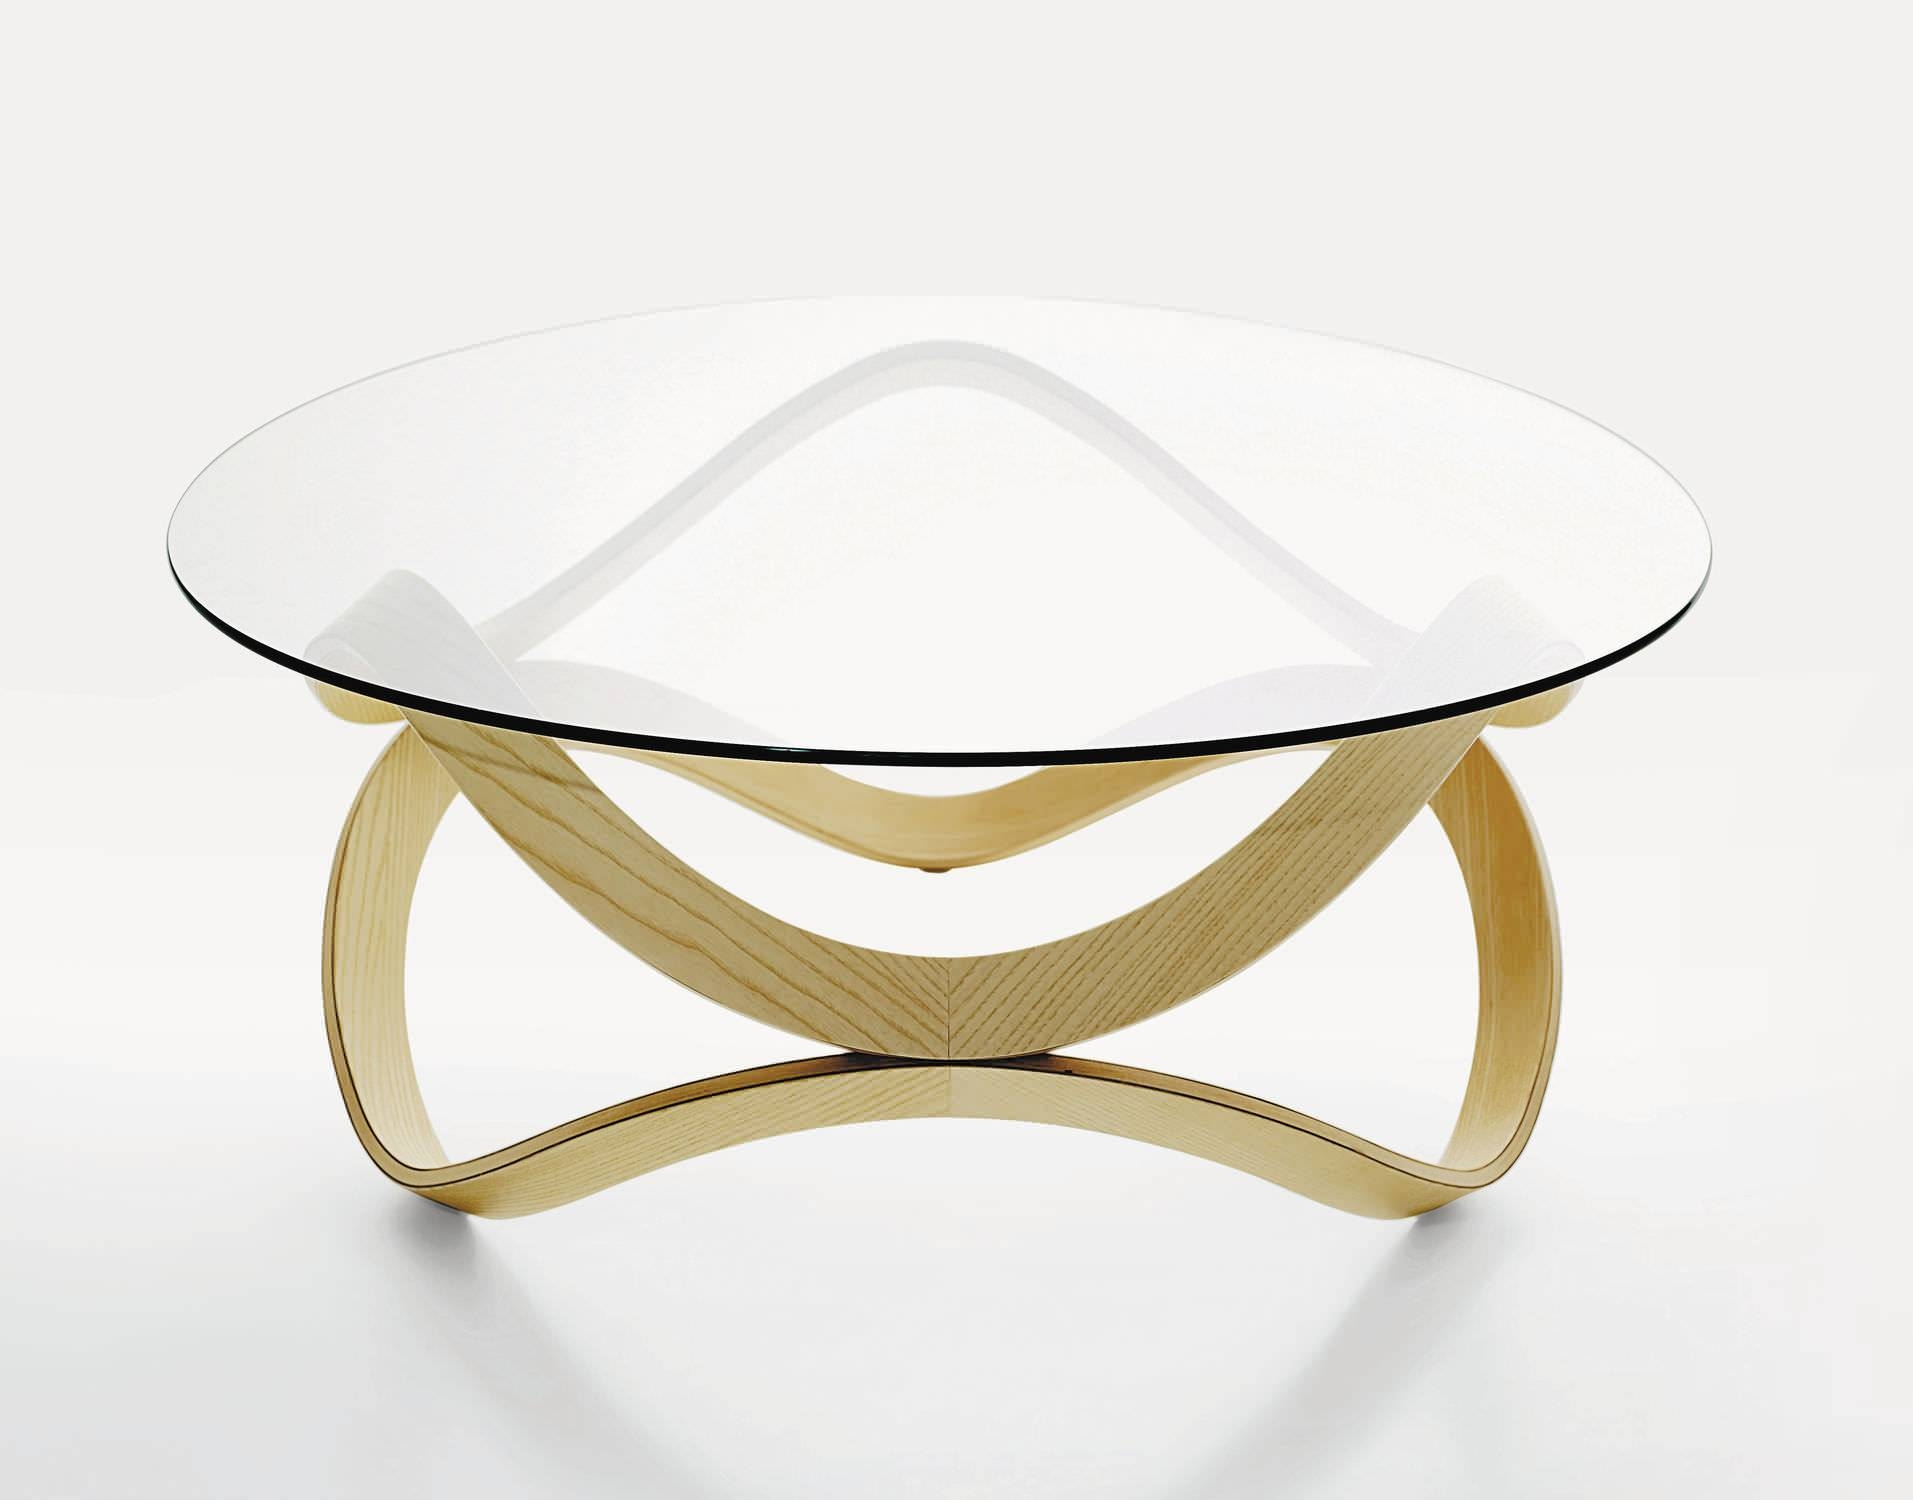 Contemporary Coffee Table / Glass / Oak / Ash - Newtond.sunaga regarding Contemporary Glass Coffee Tables (Image 14 of 30)